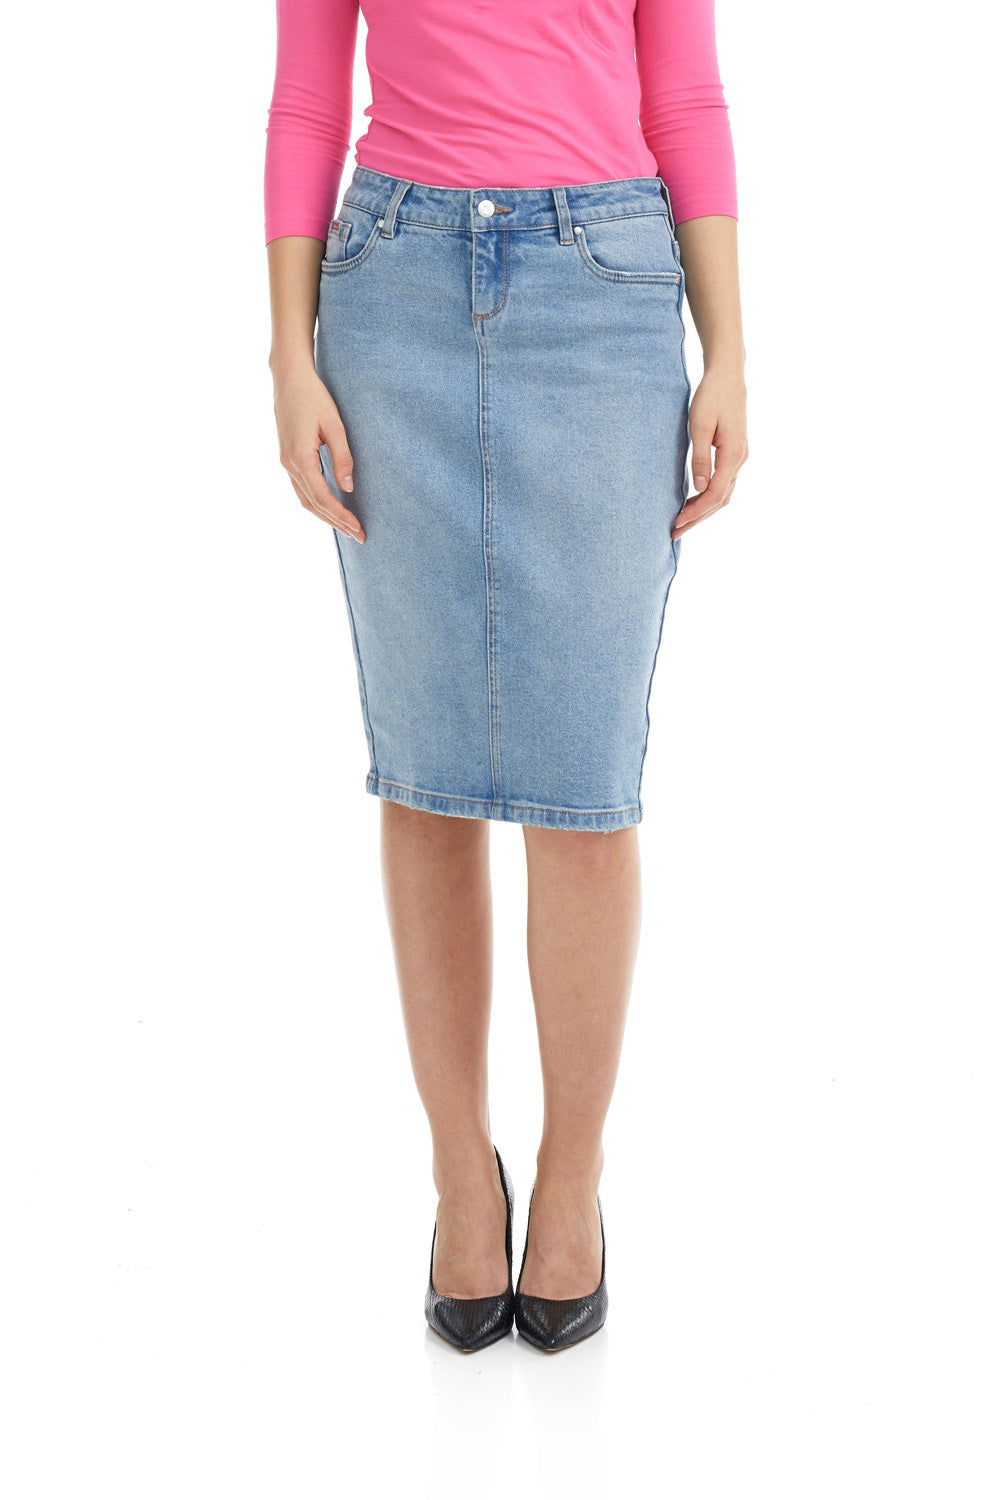 Esteez HAVANA Skirt - Classic Jean Skirt for WOMEN - BLEACH BLUE